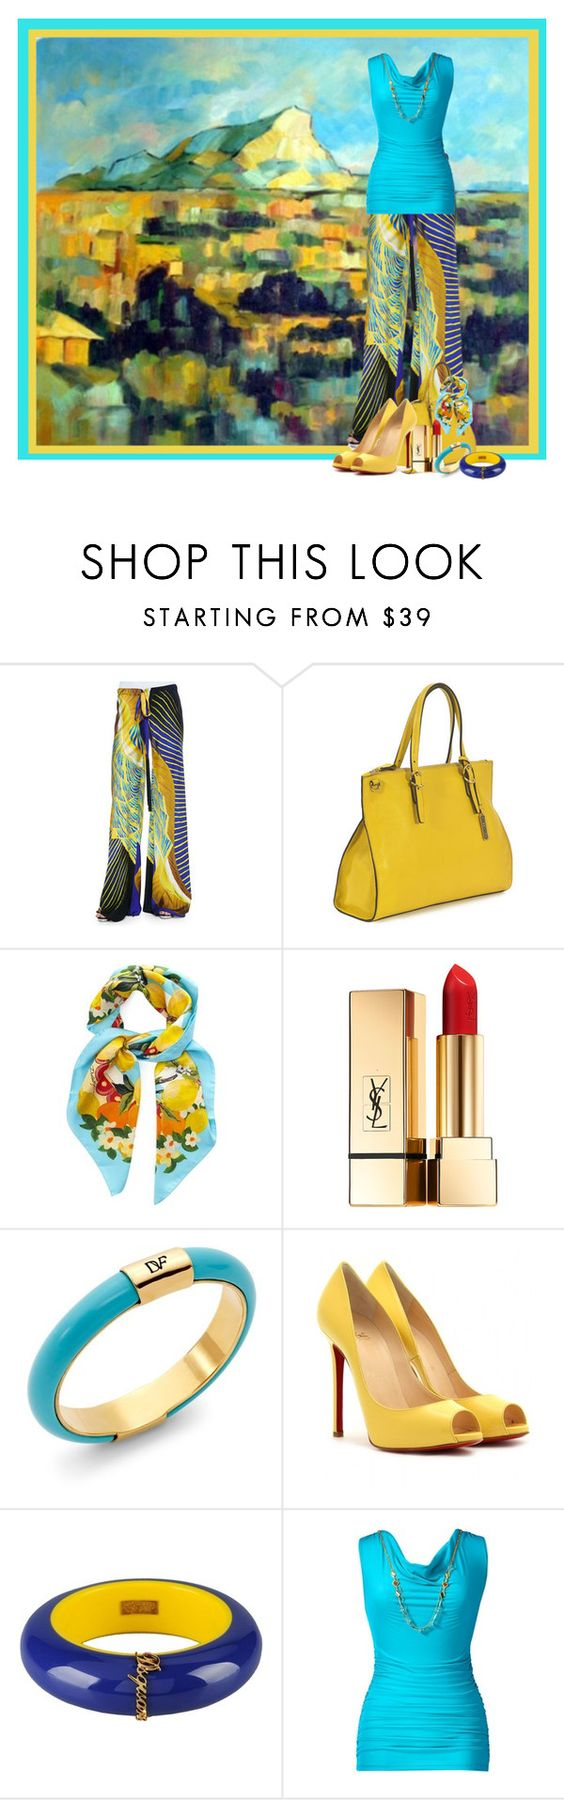 """""""City Limits by Cezanne - French Masters Mimicry"""" by flowerchild805 ❤ liked on Polyvore featuring Roberto Cavalli, RABEANCO, Dolce&Gabbana, Yves Saint Laurent, Diane Von Furstenberg, Christian Louboutin, Dsquared2 and Thalia Sodi"""